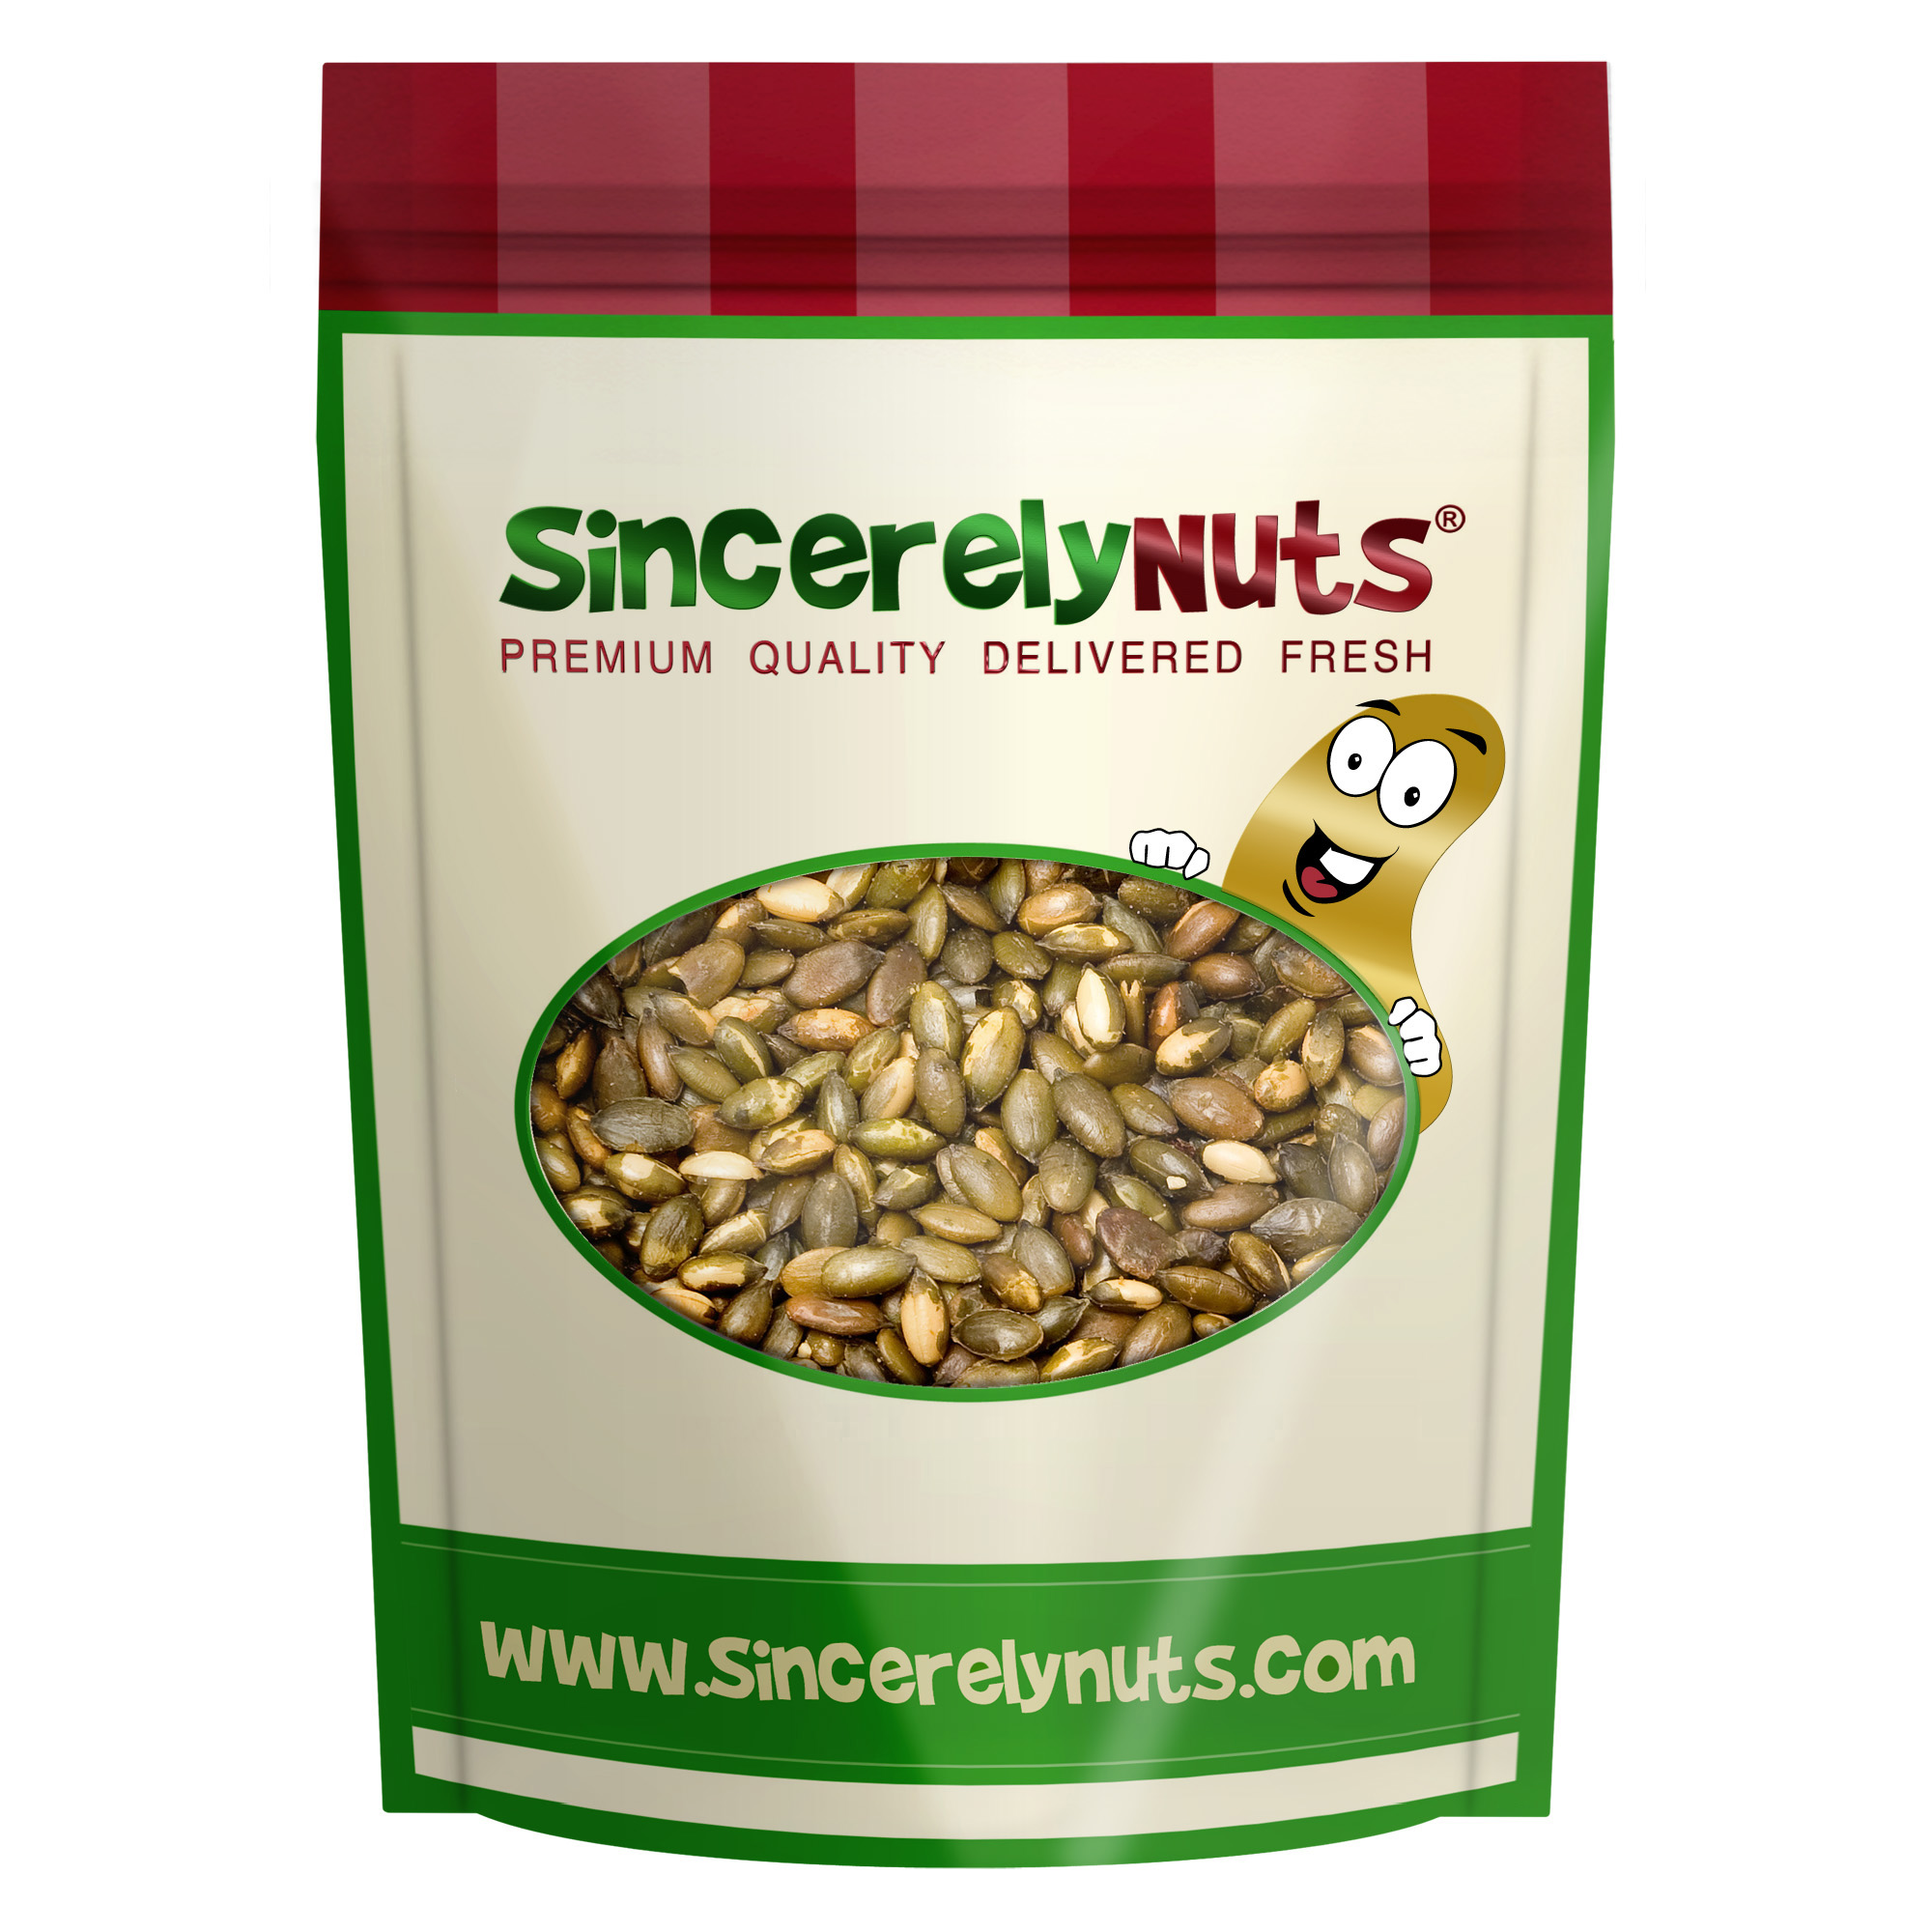 Sincerely Nuts Pumpkin Seeds (Pepitas) Roasted Salted and shelled, 2 LB Bag by Sincerely Nuts